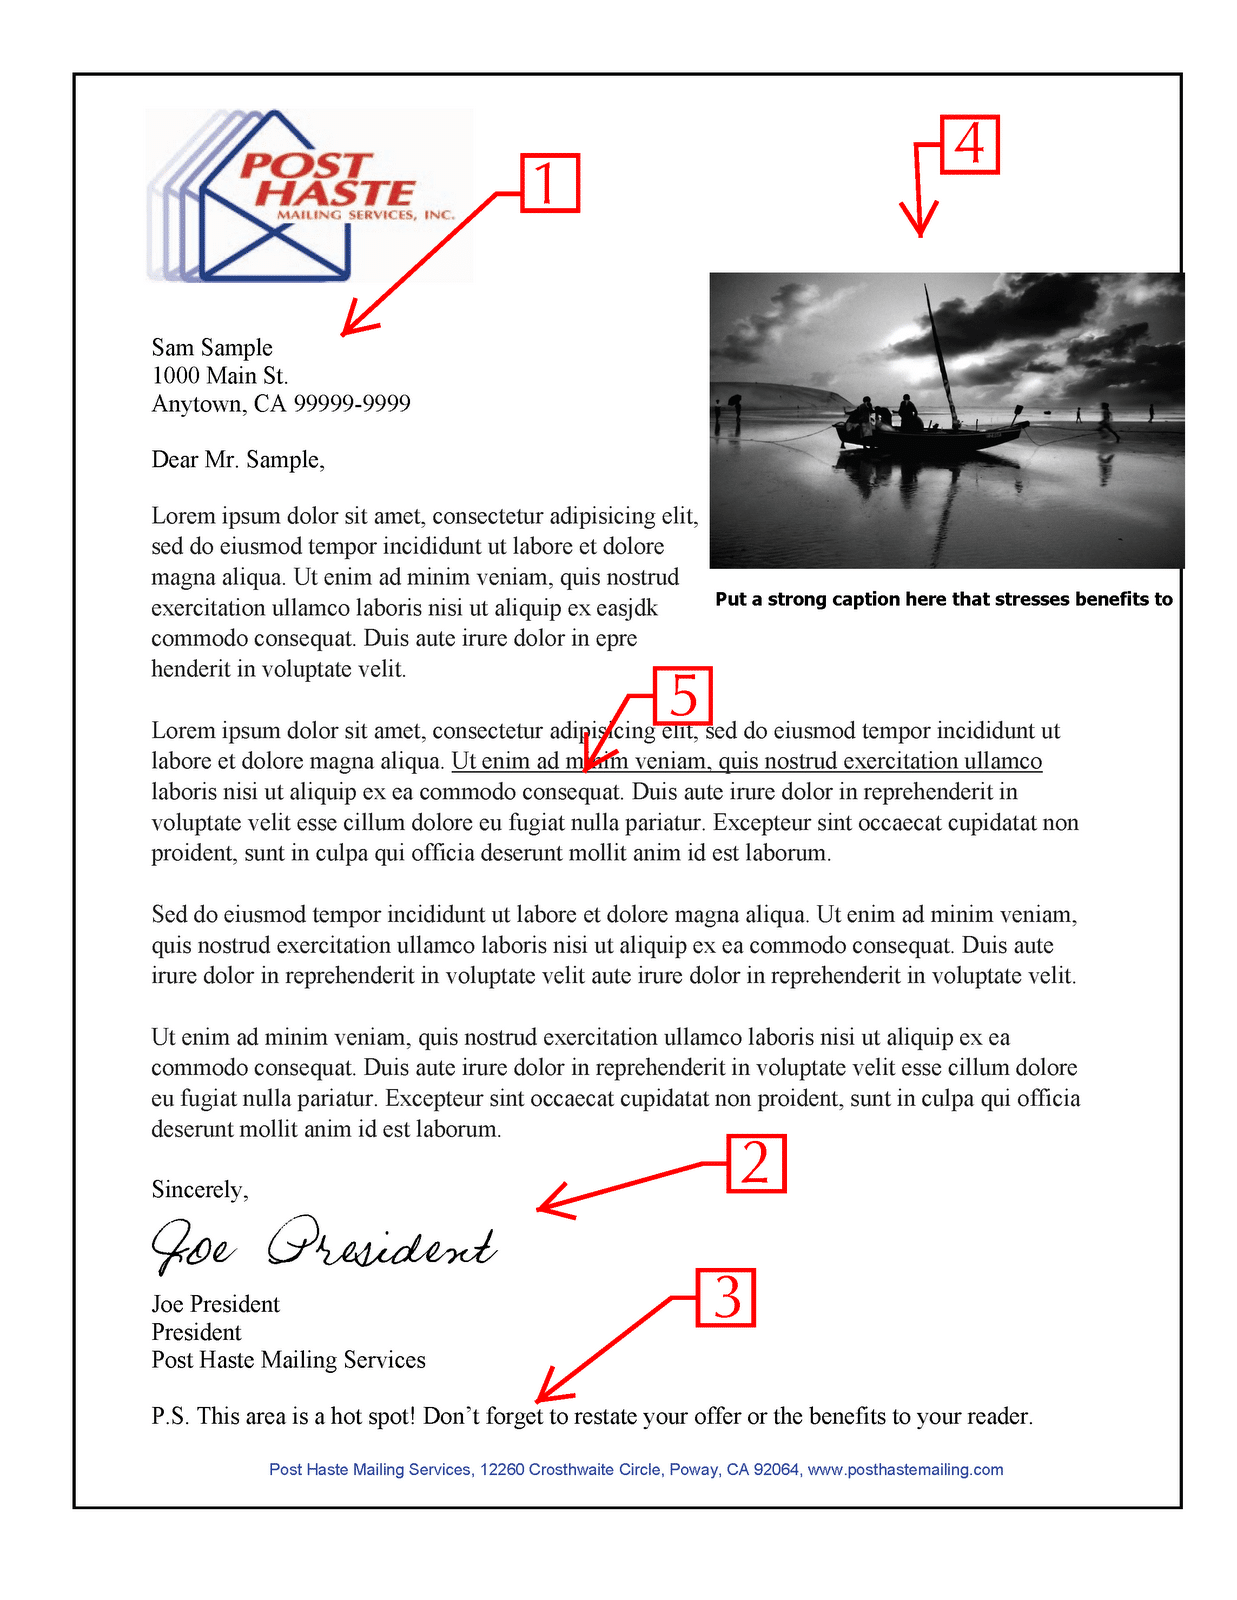 Sample letter copy